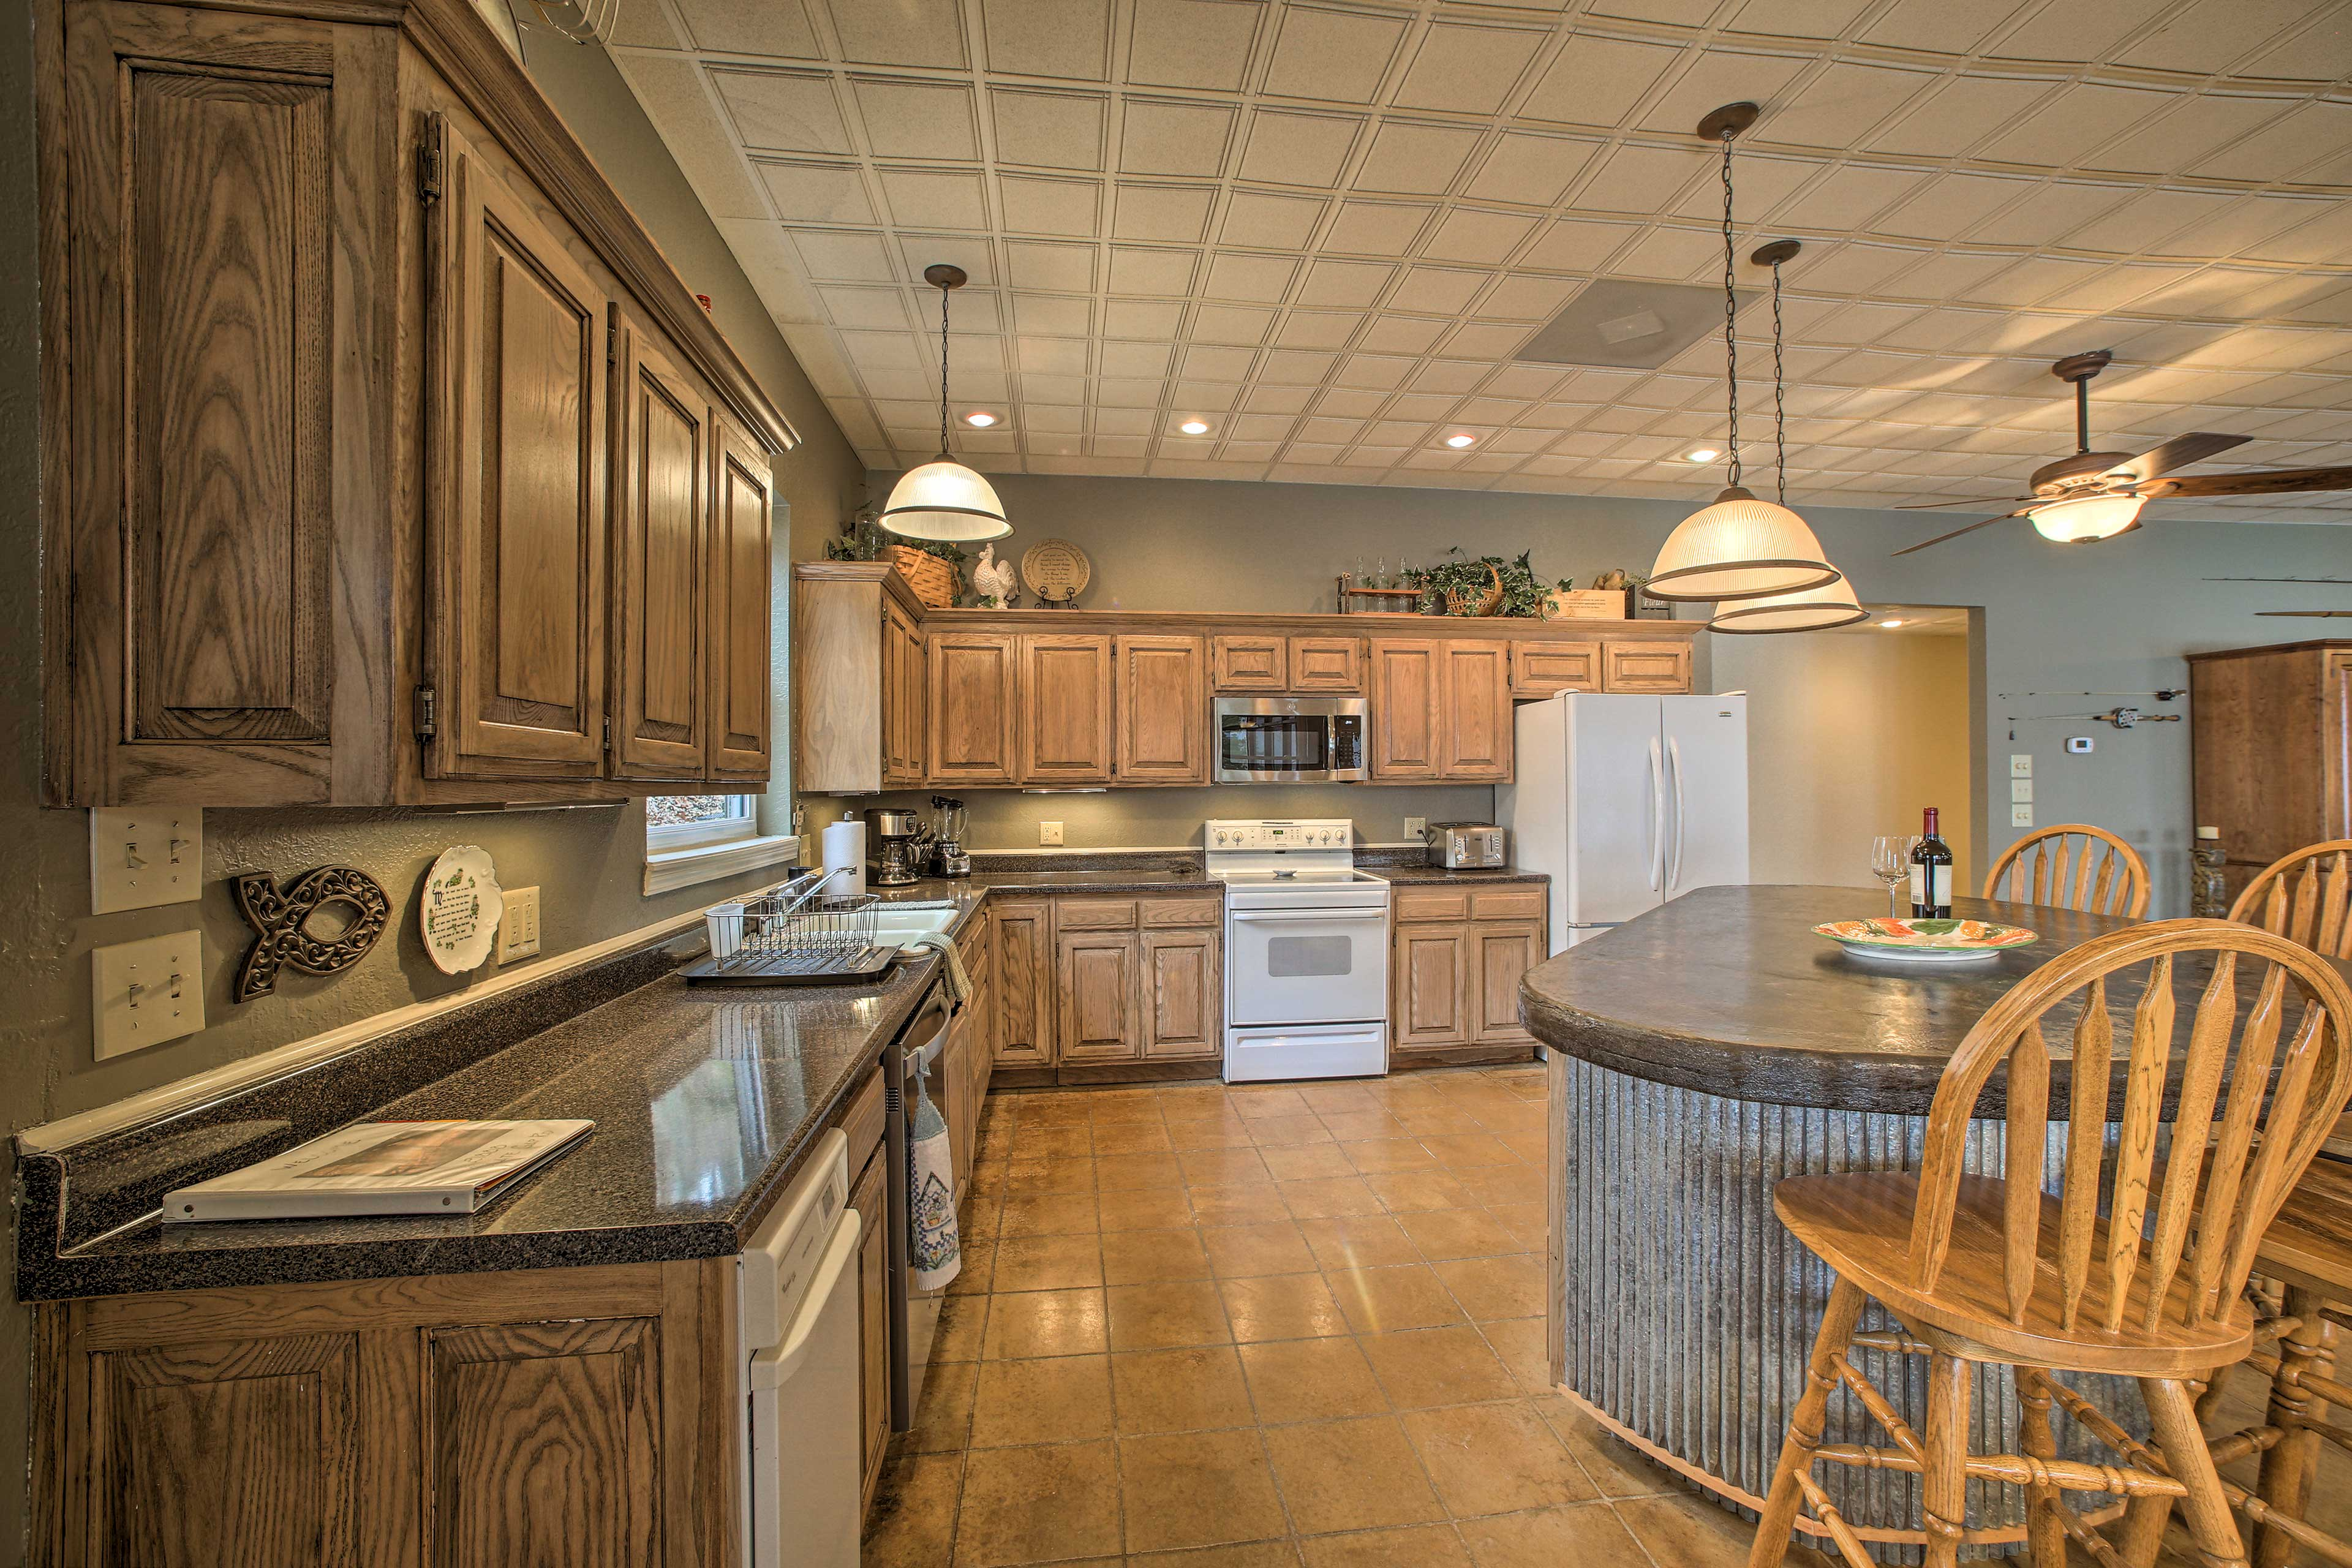 Prepare all your favorite meals or try a new recipe in this modern kitchen.